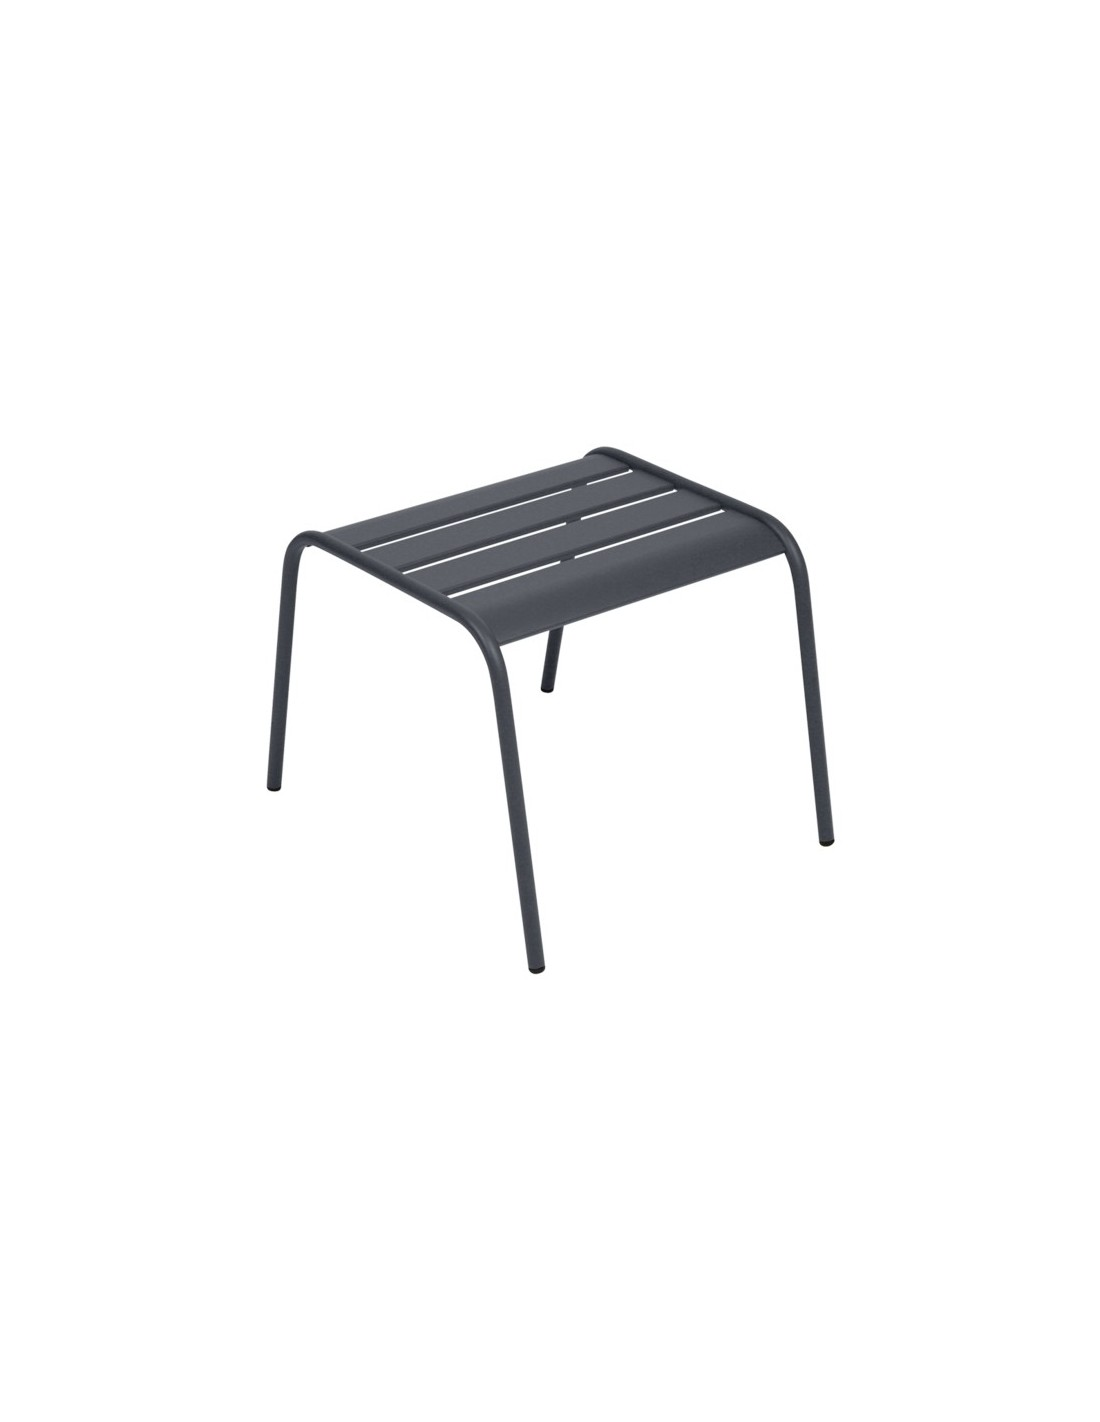 table basse repose pieds monceau m tal empilable fermob. Black Bedroom Furniture Sets. Home Design Ideas